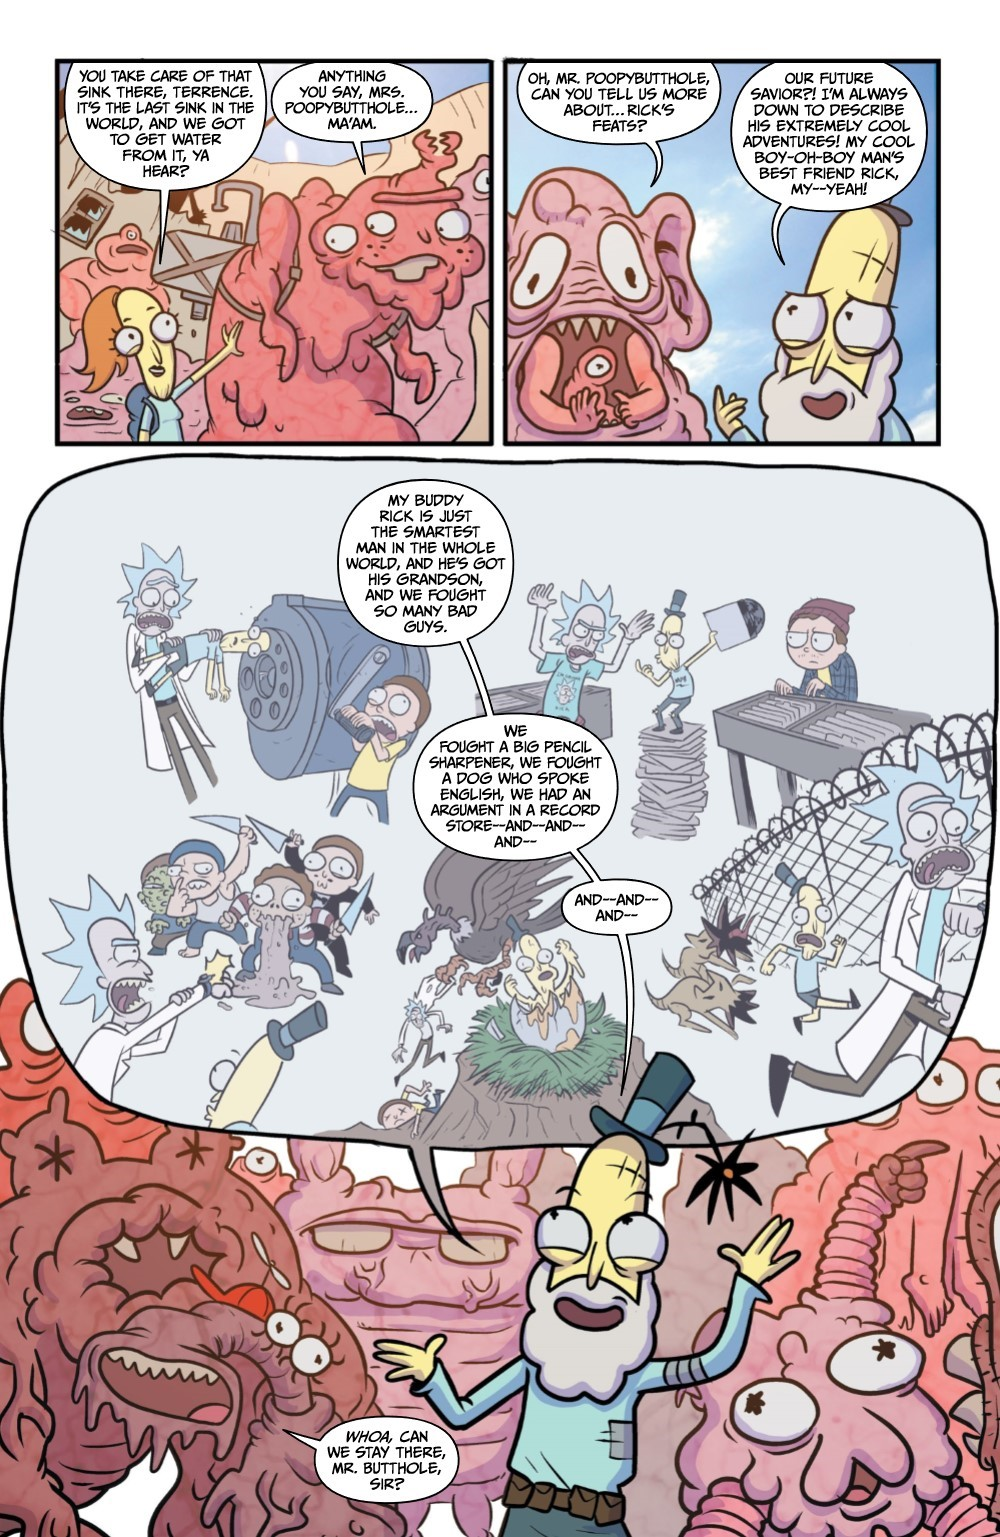 RM-RNH-2-REFERENCE-09 ComicList Previews: RICK AND MORTY RICK'S NEW HAT #2